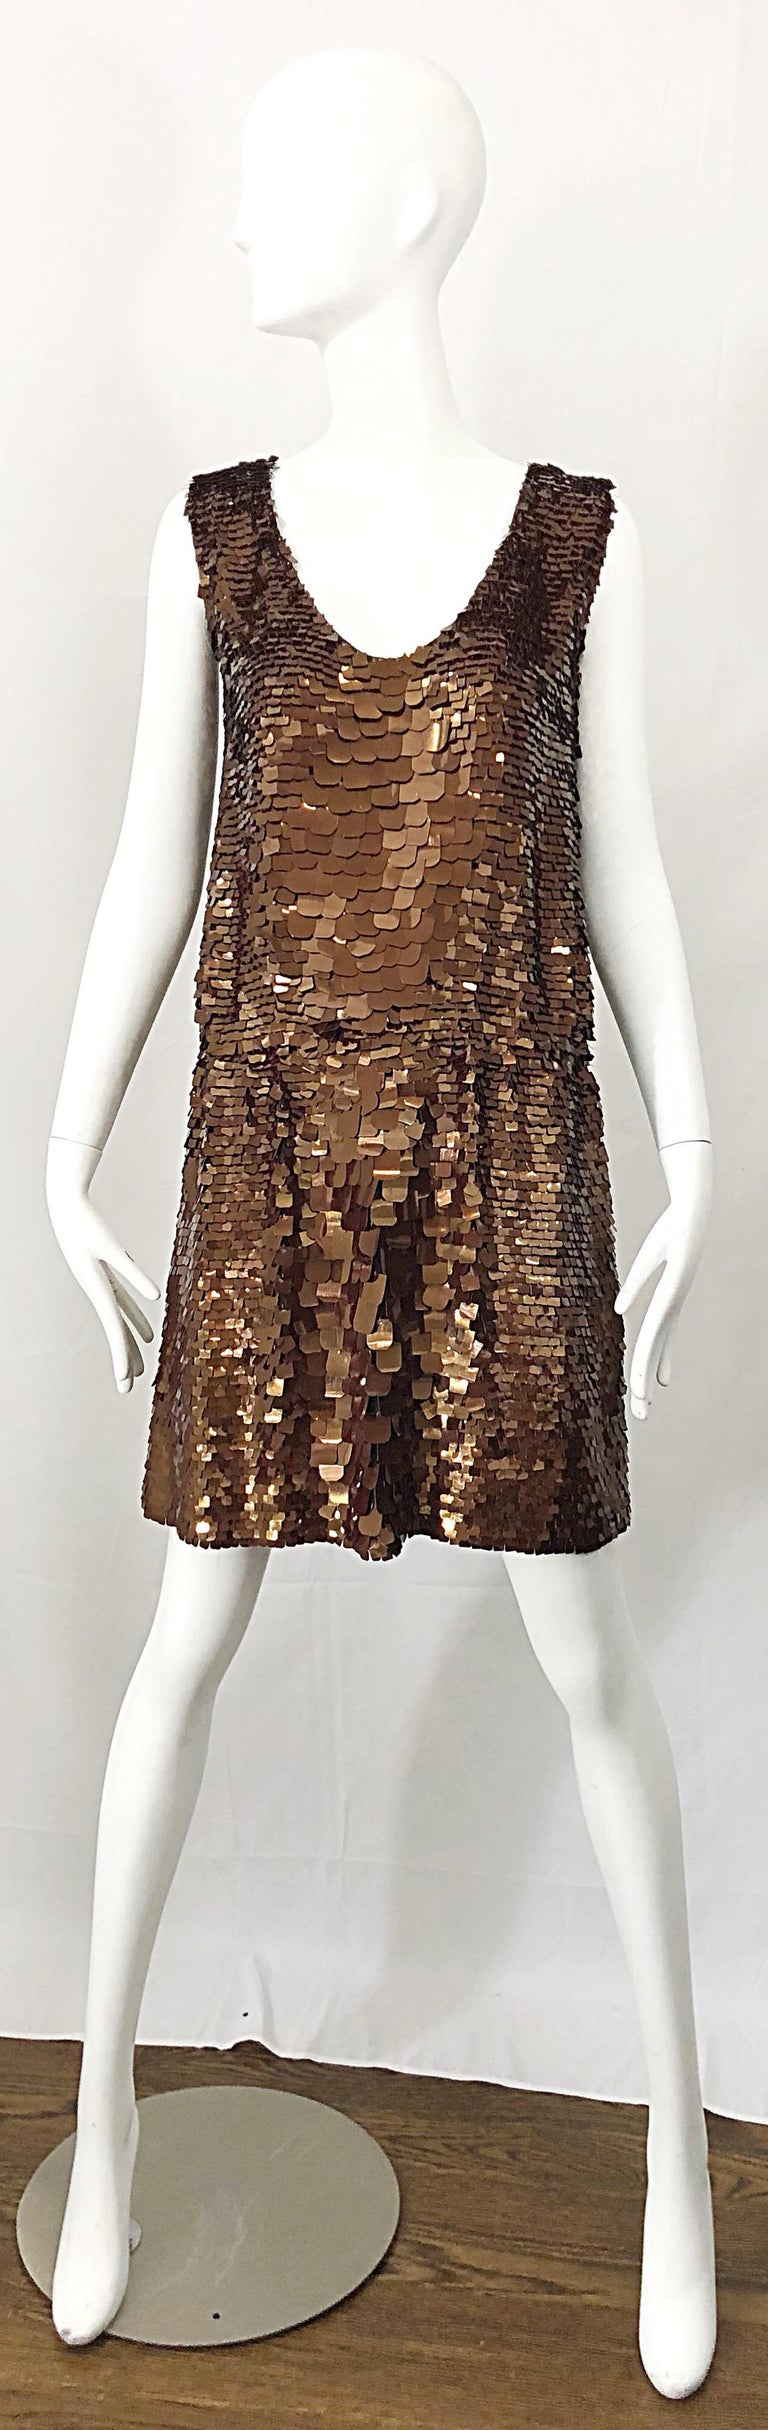 Amazing 90s does 20s ISAAC MIZRAHI chocolate brown sequined paillette encrusted silk Gatsby style flapper dress! Features thousands of hand-sewn brown paillettes in a variety of shapes and sizes. Elastic waistband stretches to fit. The perfect